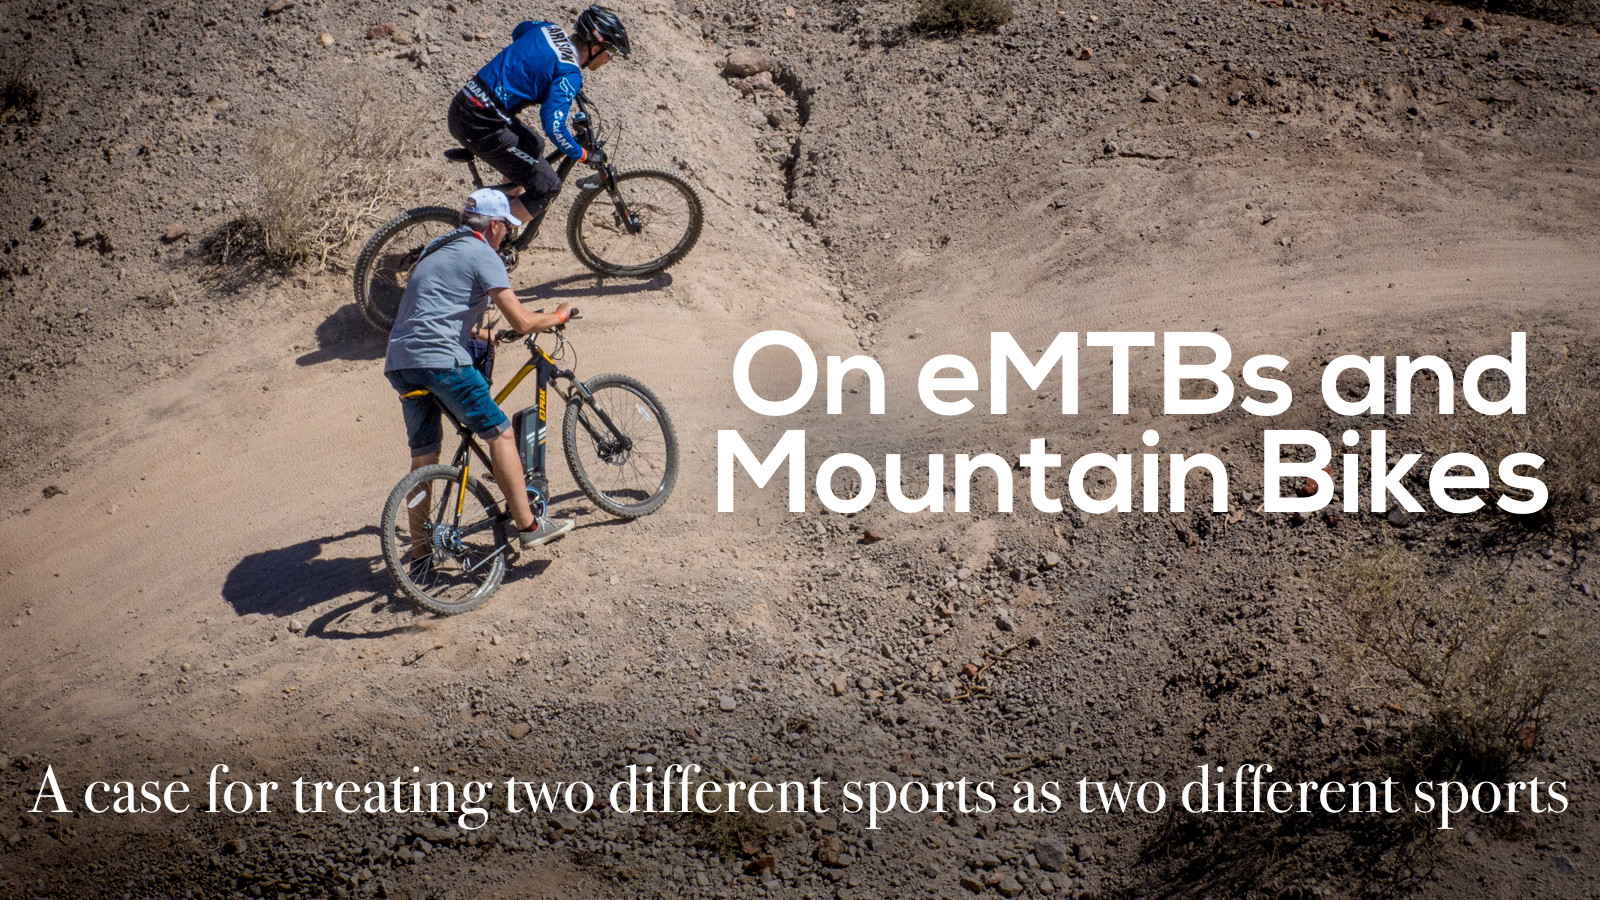 On eMTB's and Mountain Bikes